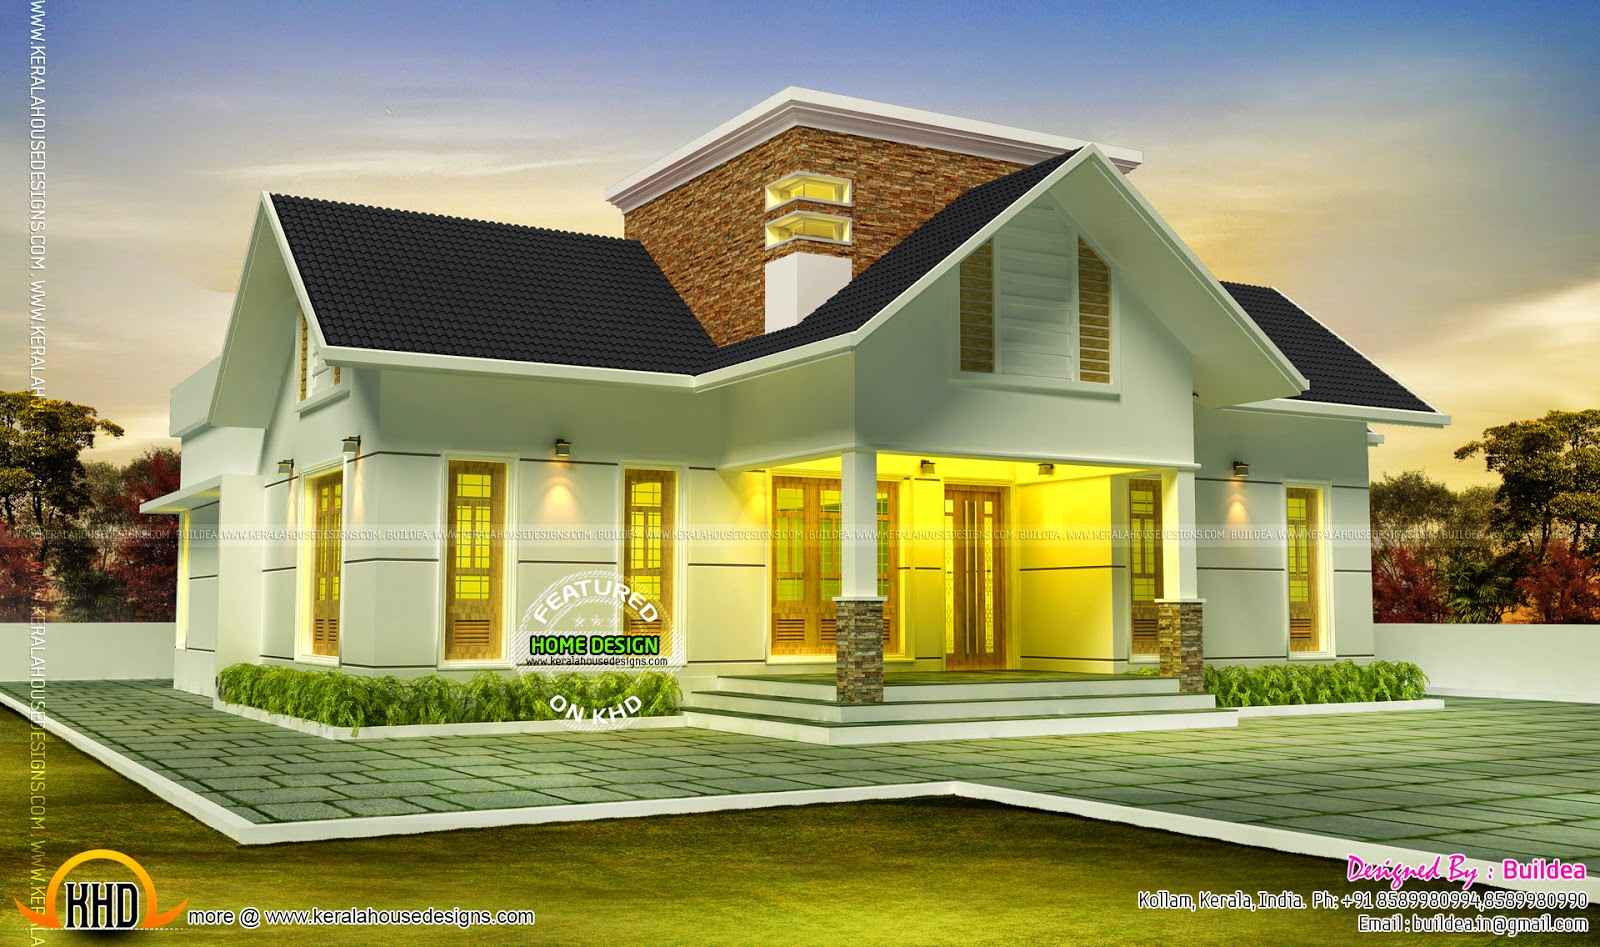 Very beautiful house kerala home design and floor plans for A beautiful house image